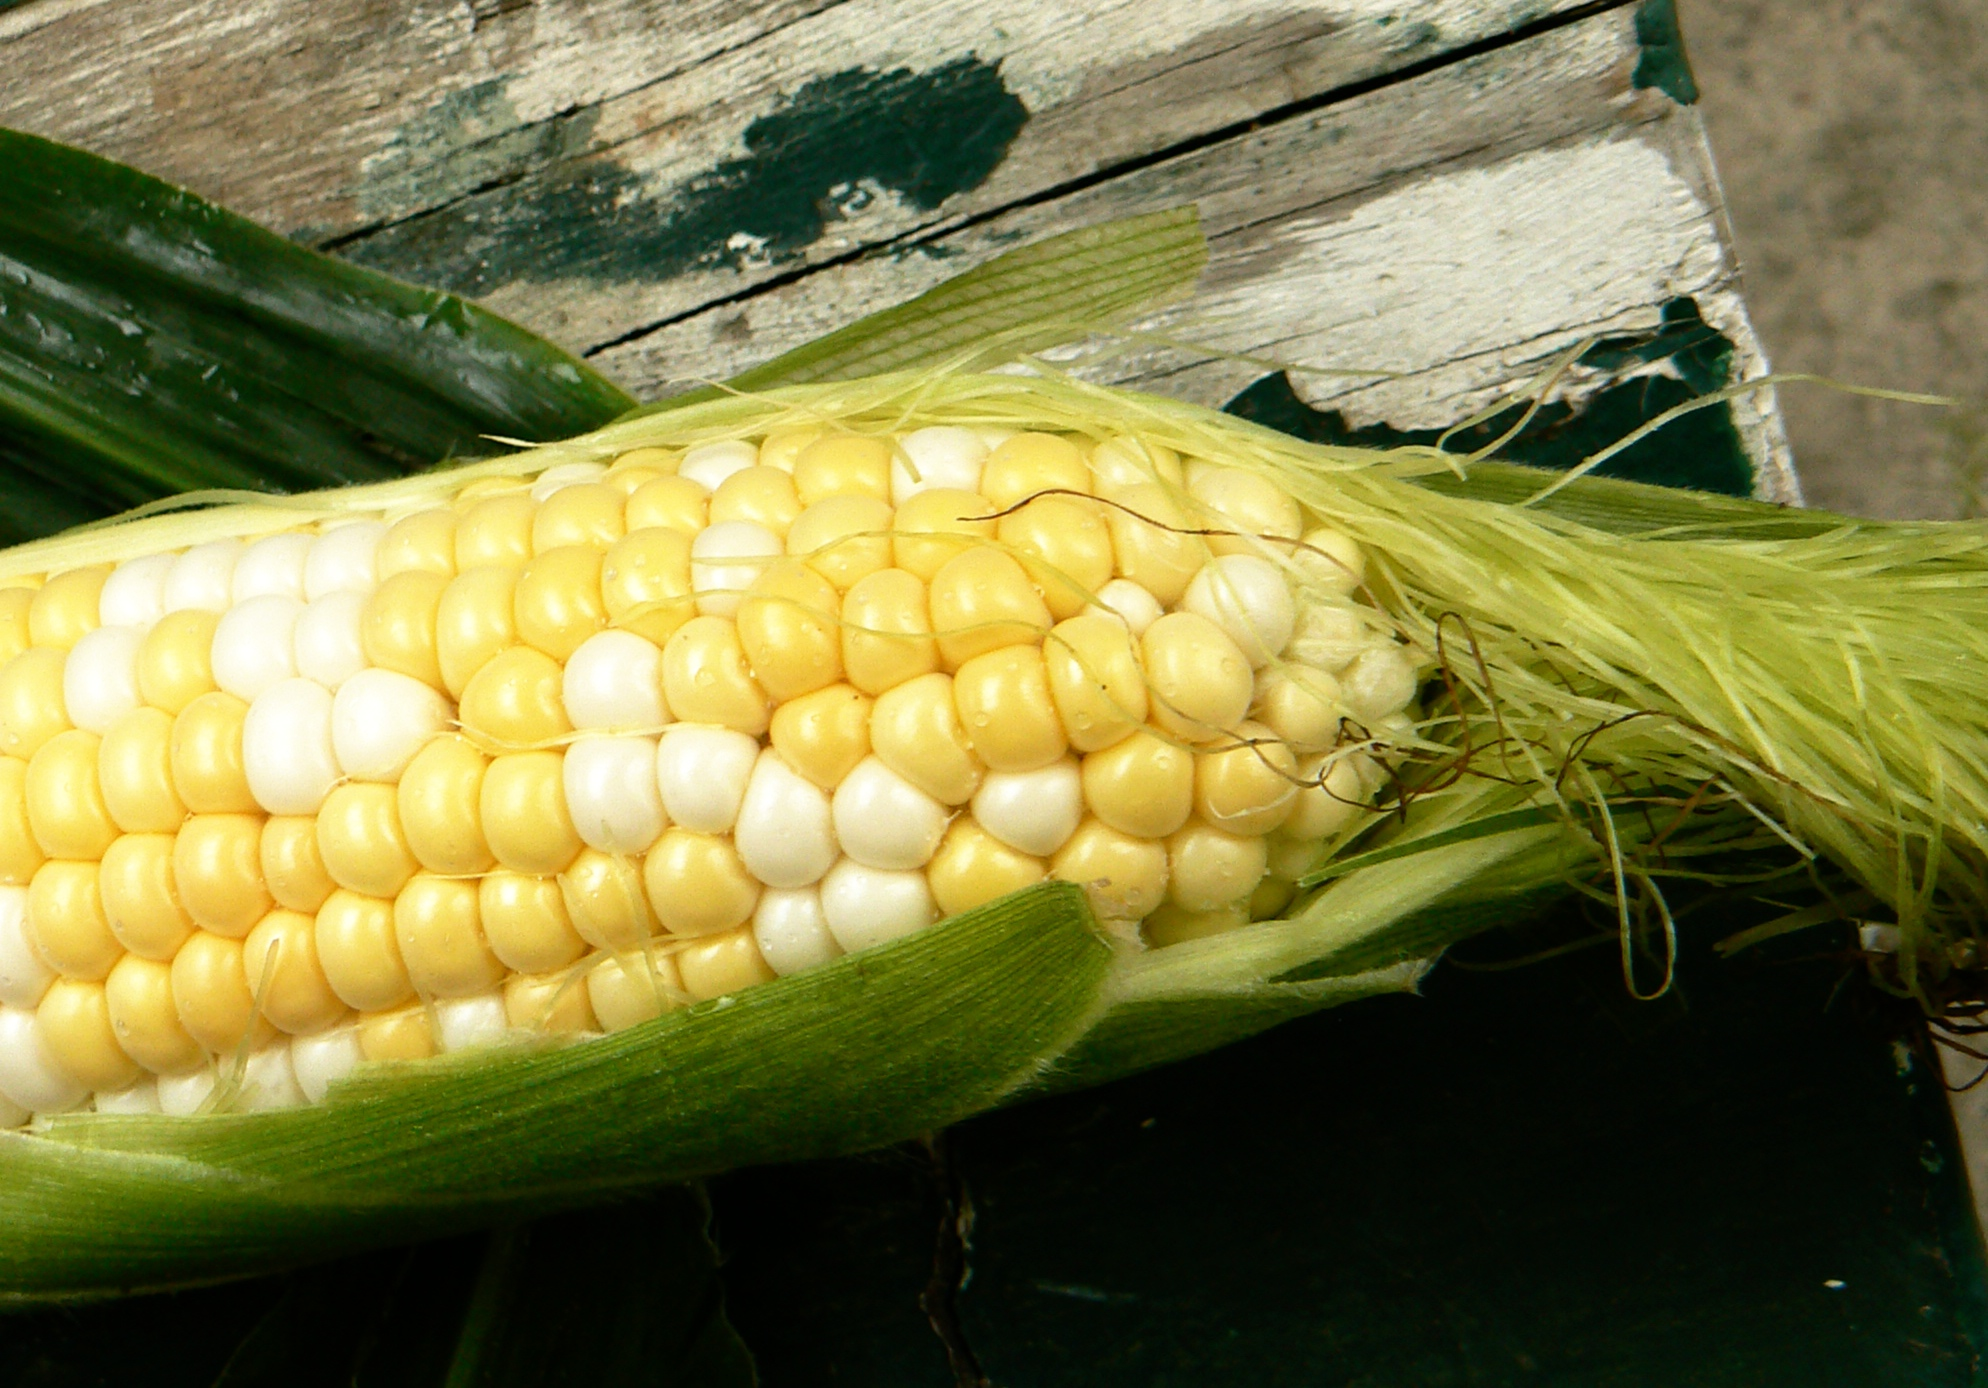 Fresh, Kirbygrown sweetcorn, a summertime essential.